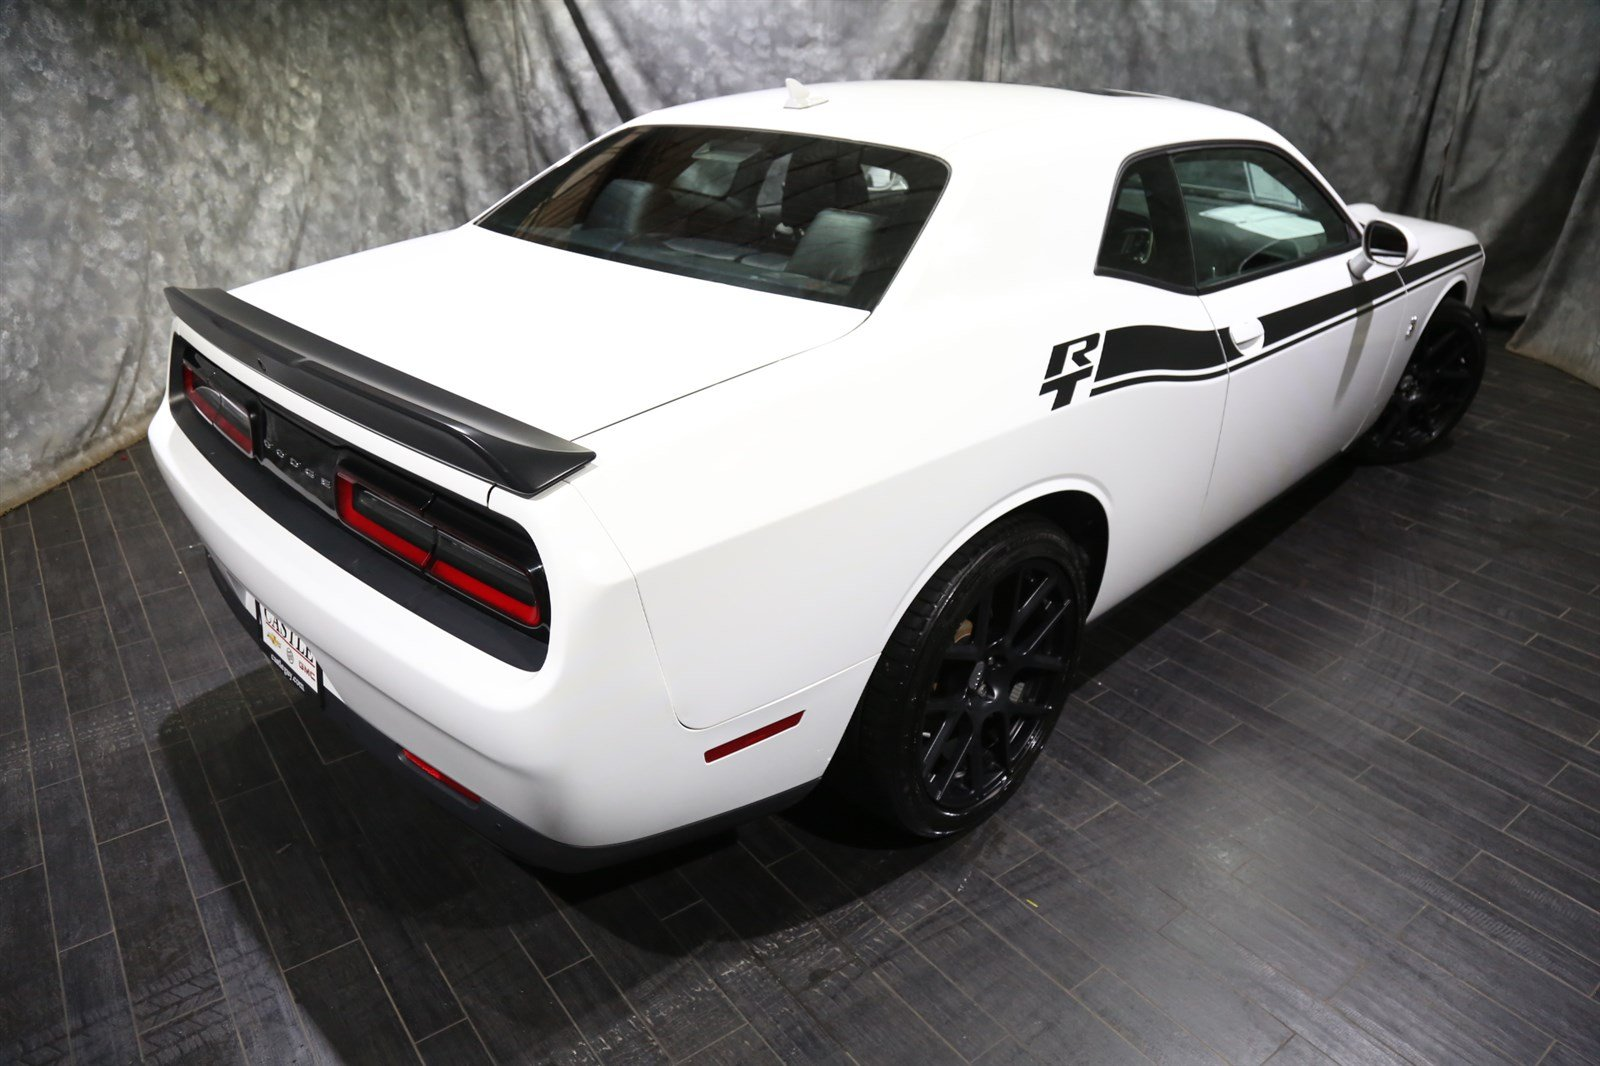 Pre Owned 2015 Dodge Challenger R T Scat Pack 2dr Car In Elk Grove Mirror Wiring Harness 1987 Up Toyota Village H1879 Castle Automotive Group